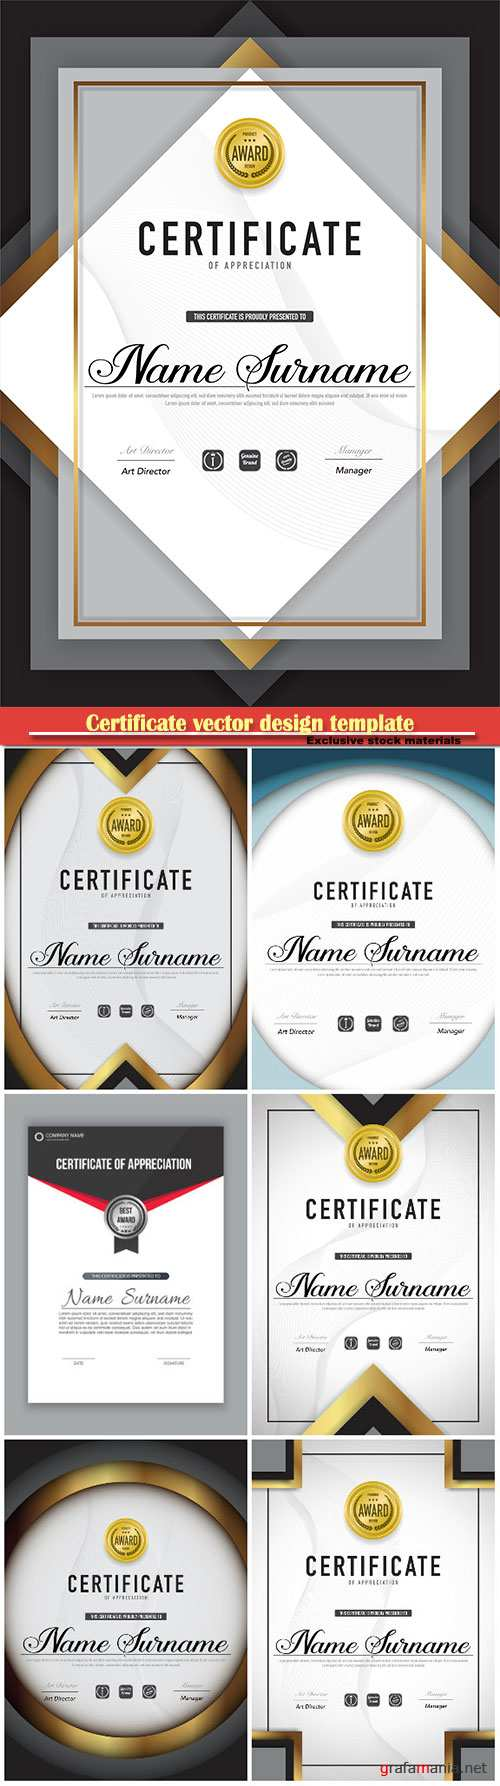 Certificate and vector diploma design template # 55